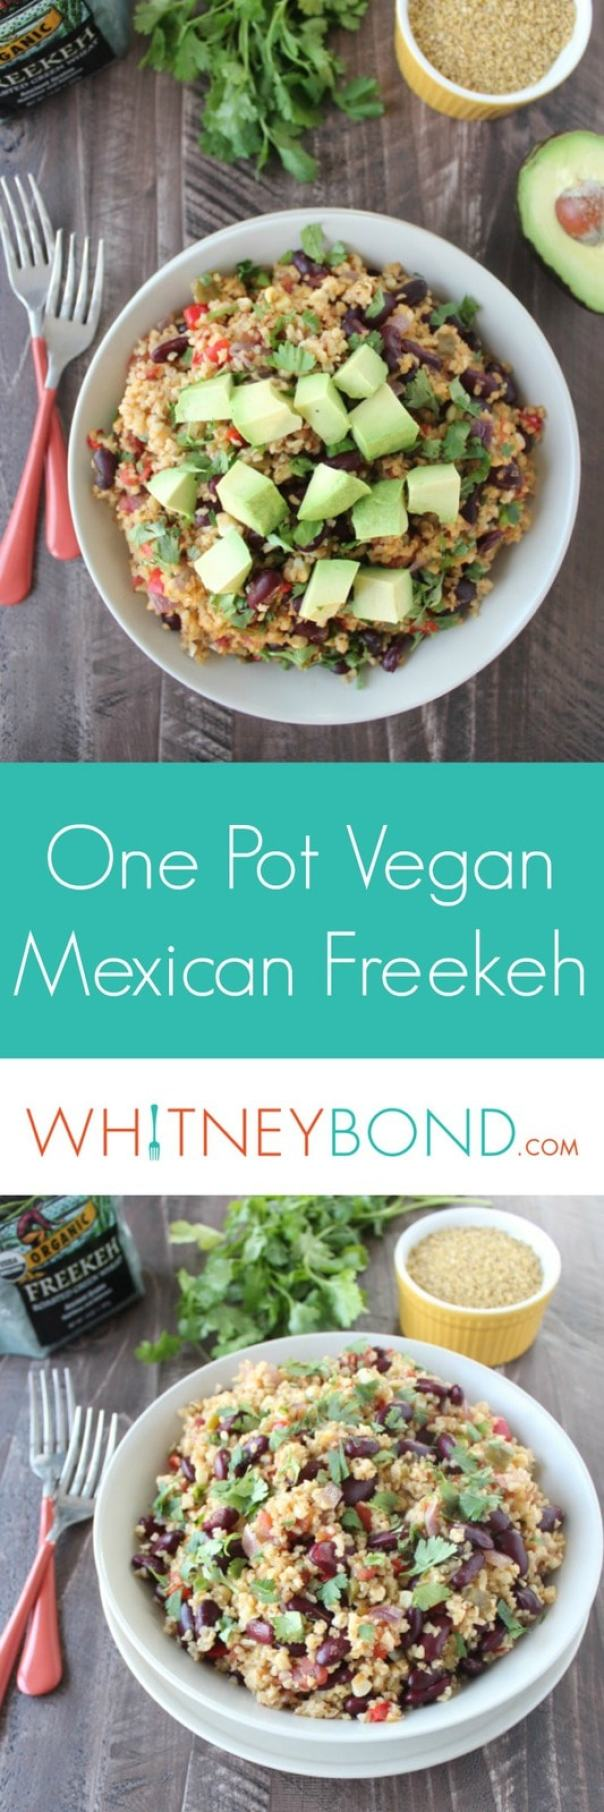 One Pot Vegan Mexican Freekeh Recipe